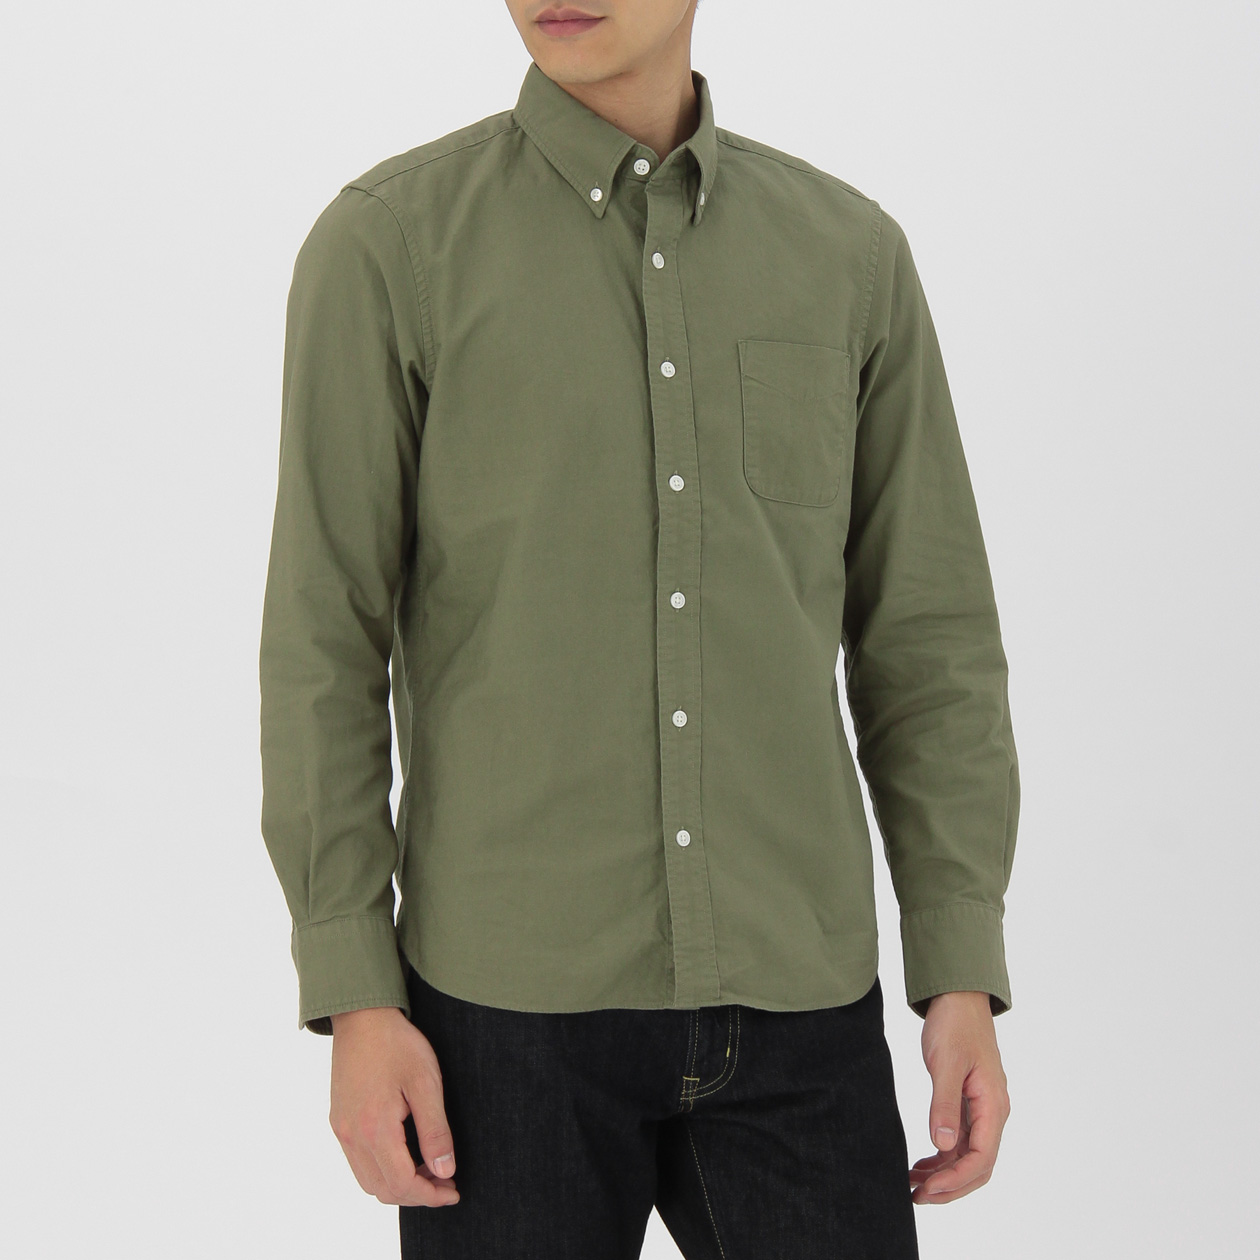 OGC GARMENT DYE OXFORD BUTTON DOWN SHIRT